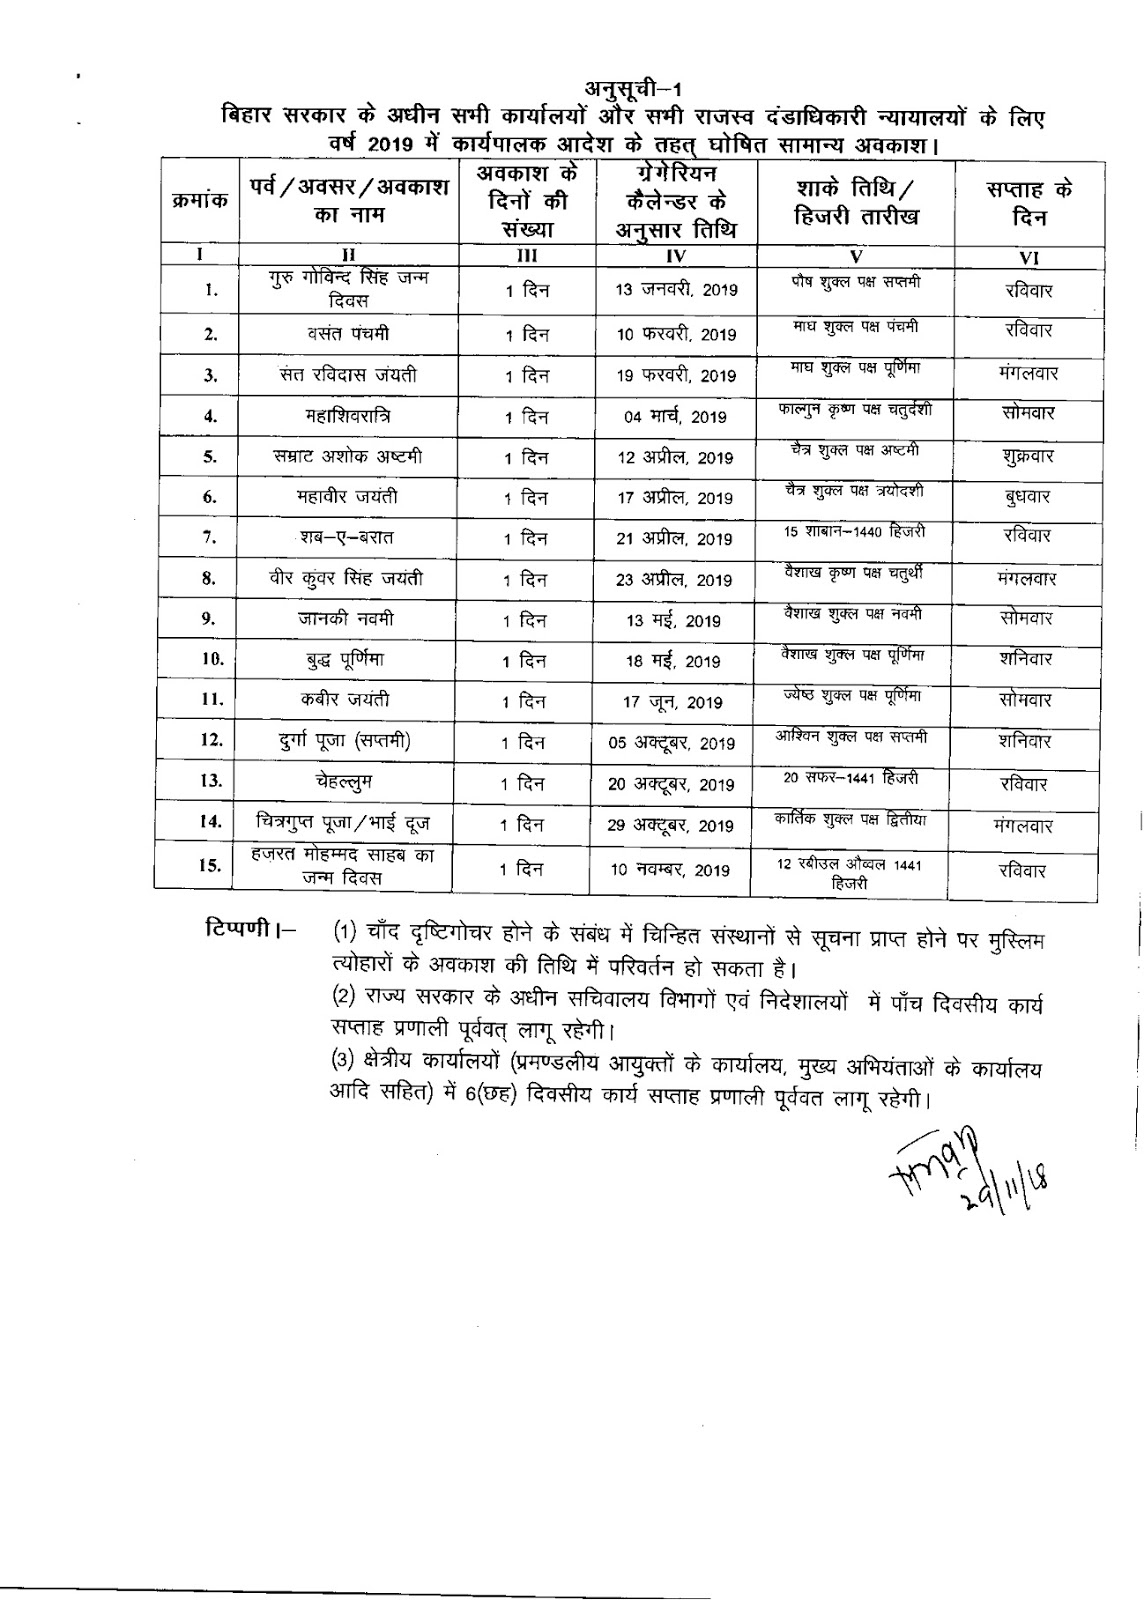 Bihar Government Calendar 2019 #educratsweb throughout Bihar Sarkar Calender